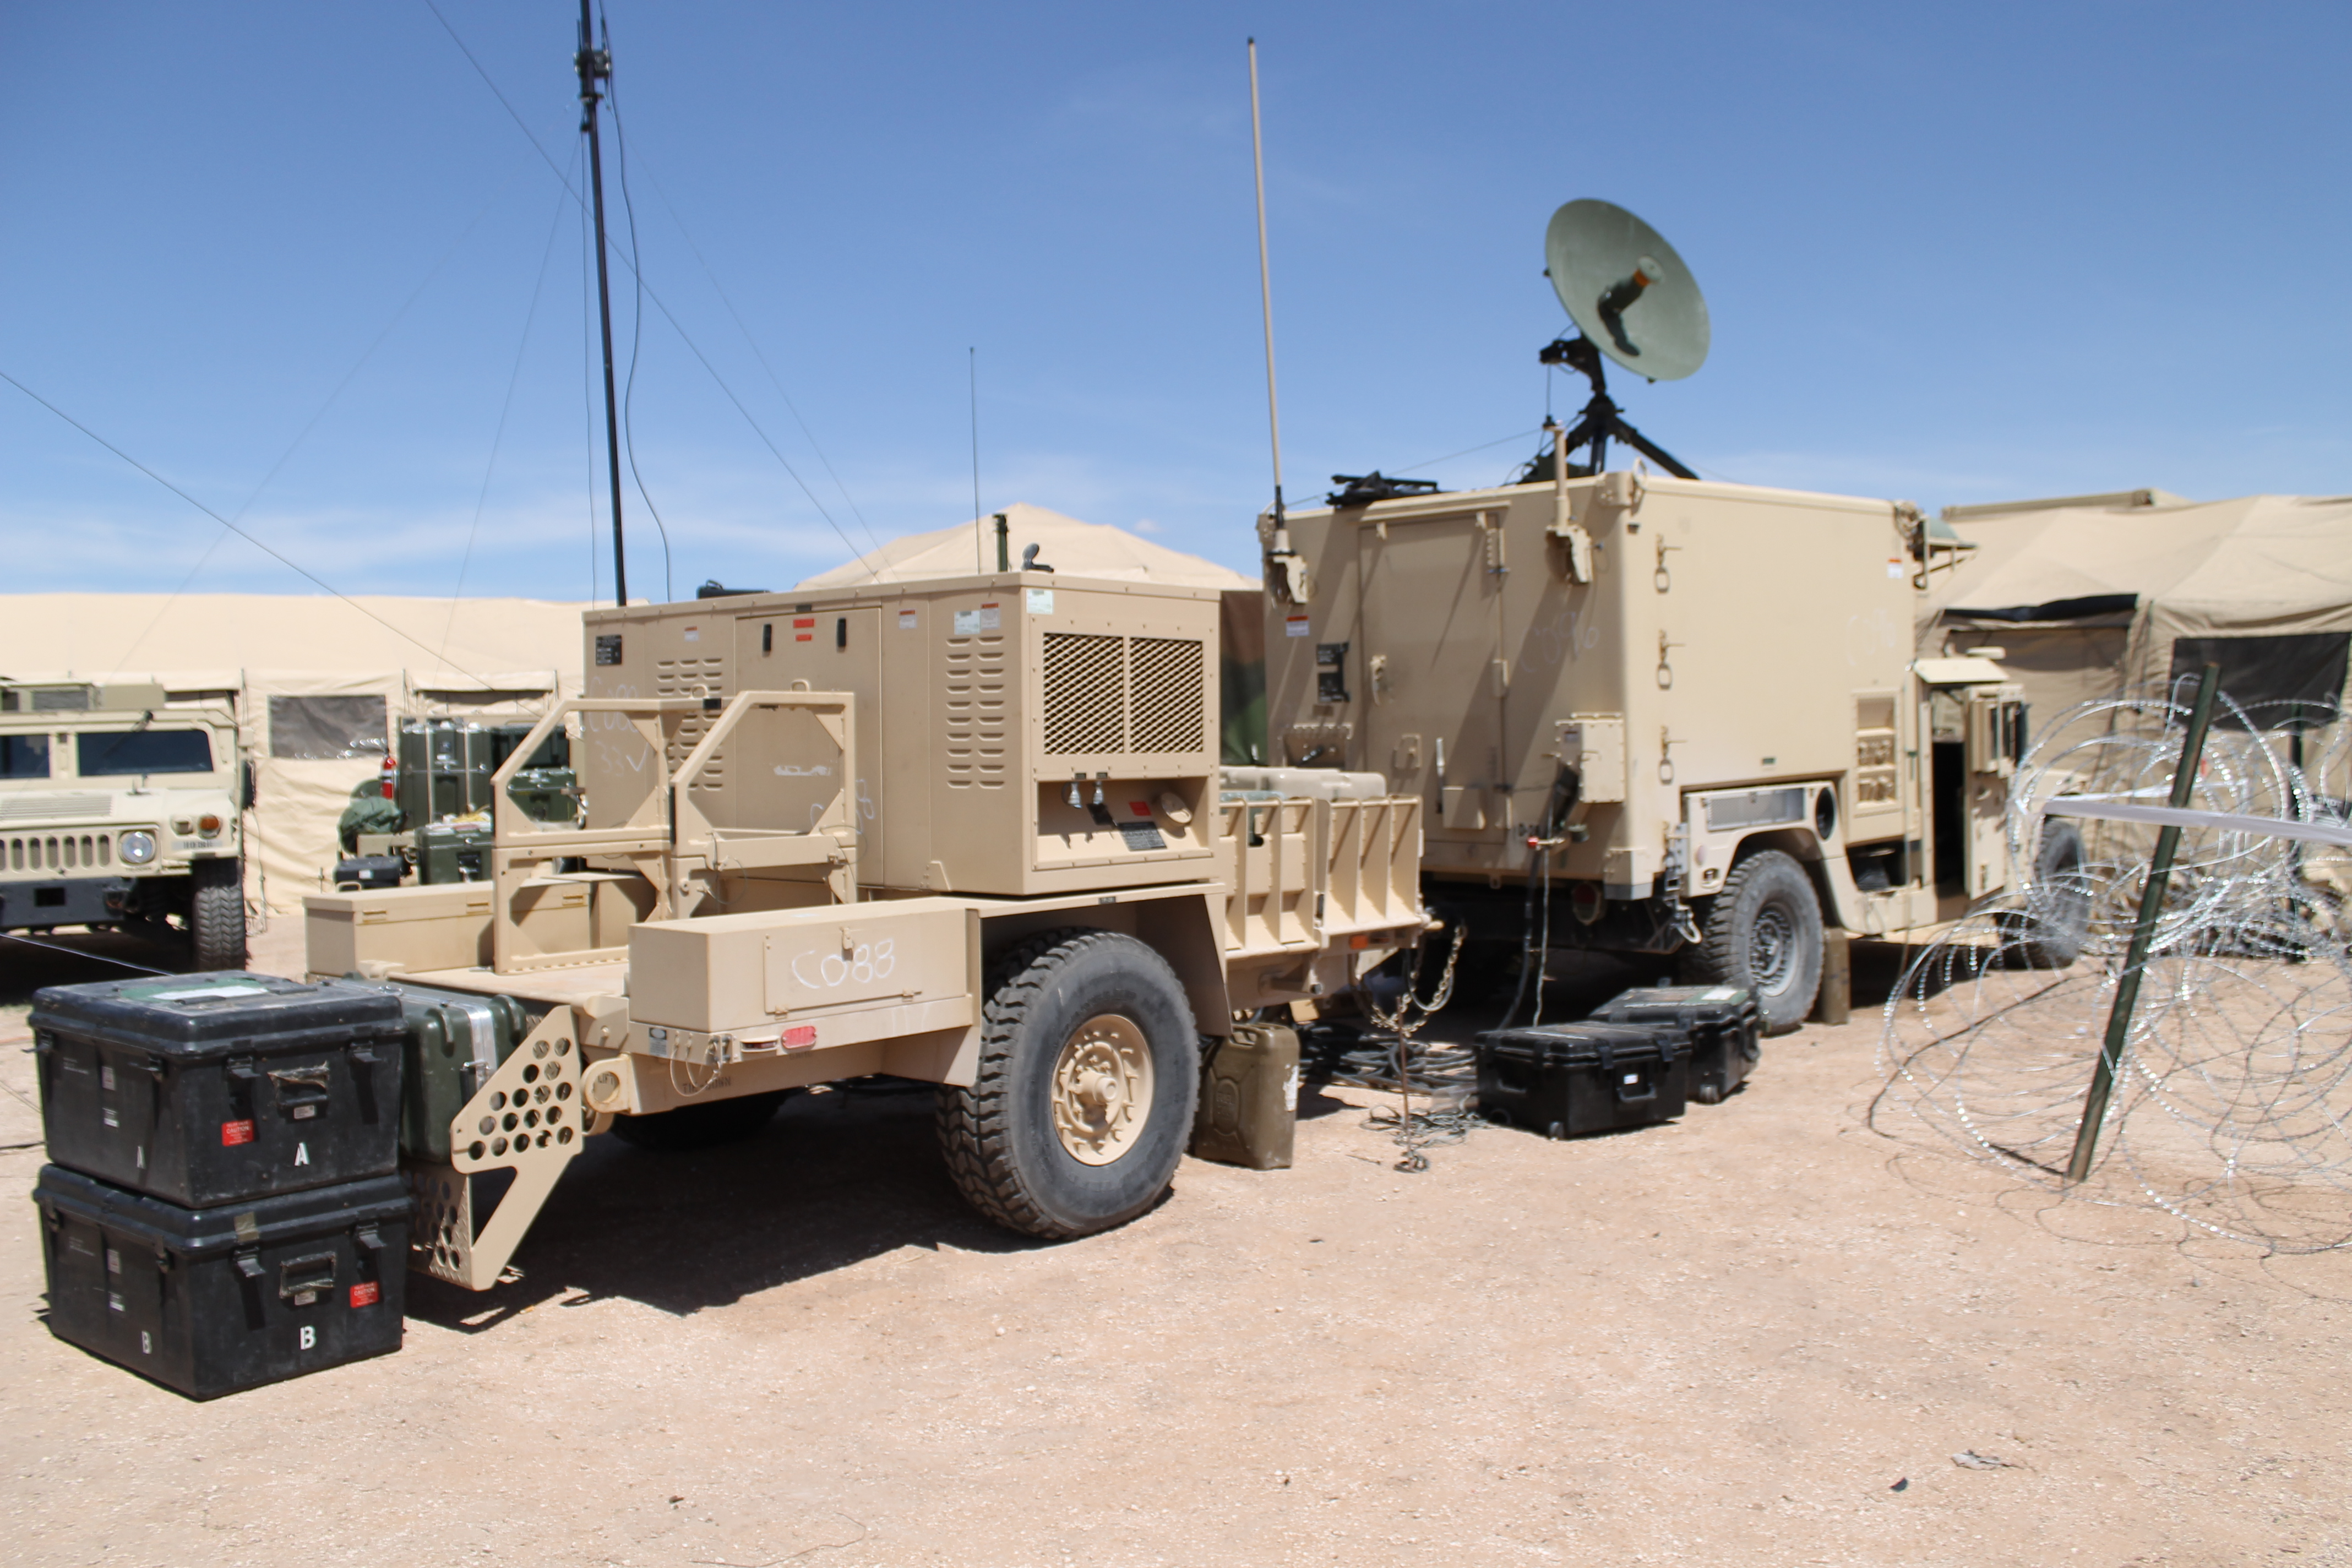 Other network and communications systems were tested and evaluated near the TOC during the NIE including the WIN-T Network Operations and Security Center- Lite, which provides network operations capability with automated tools to respond to network events. The NOSC-L is designed to support units like the air assault unit conducting the NIE because it's lighter-weight, more mobile and can be sling-loaded. (Jen Judson/Staff)